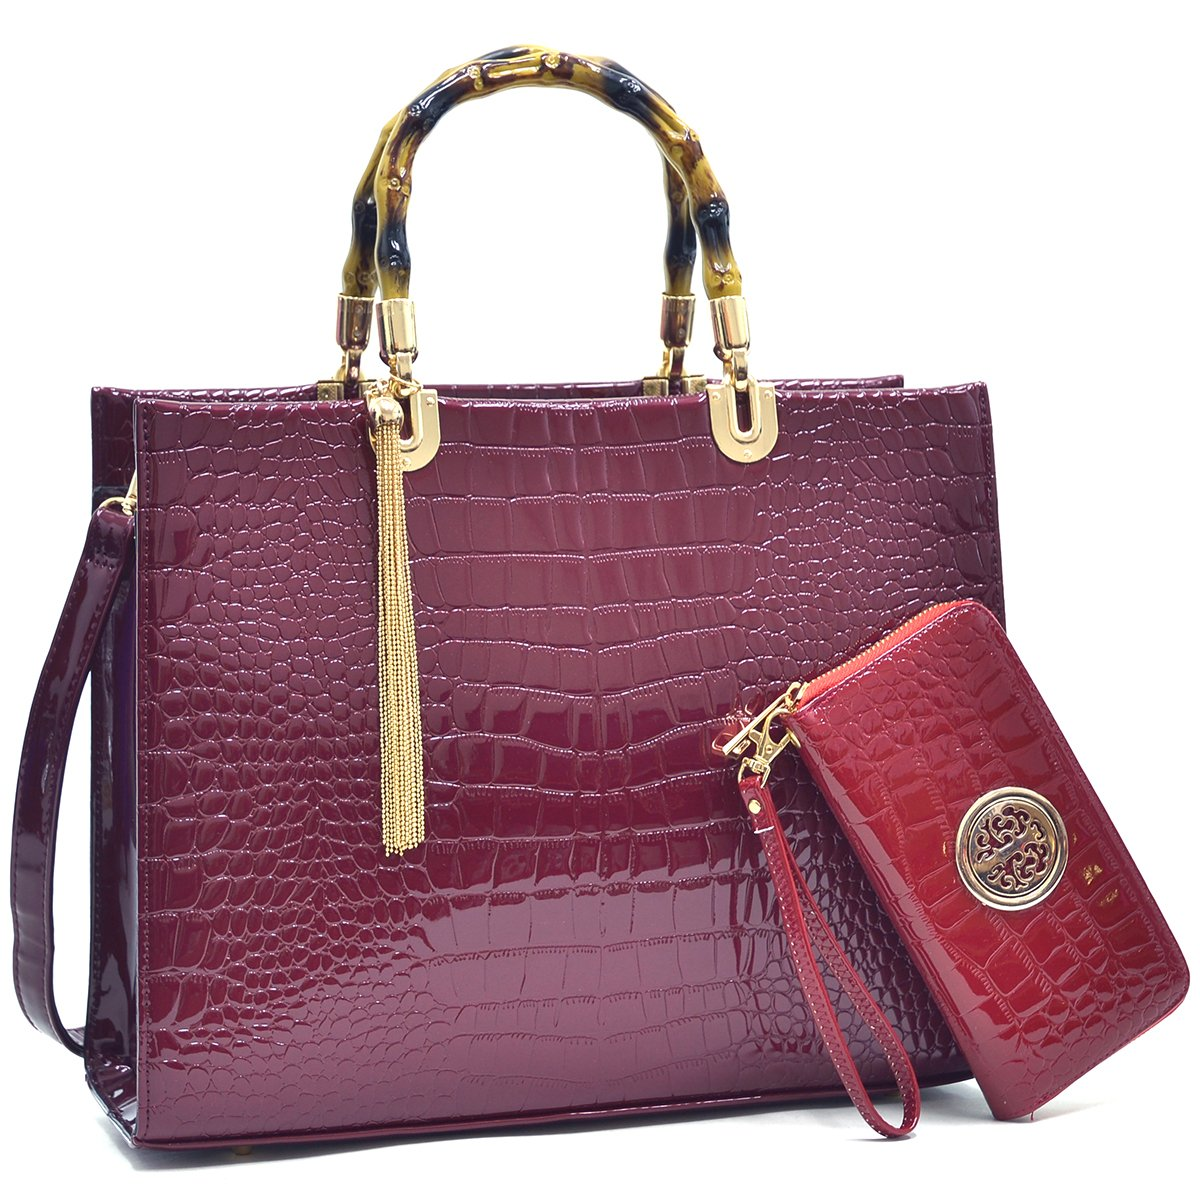 MMK collection Fashion Bamboo handle Handbag with Free wallet set for Women~Signature fashion Designer Purse~ Beautiful Designer Purse & Women Satchel Purse (2022/168) (XL-03-2022 BD(10-168 WN))